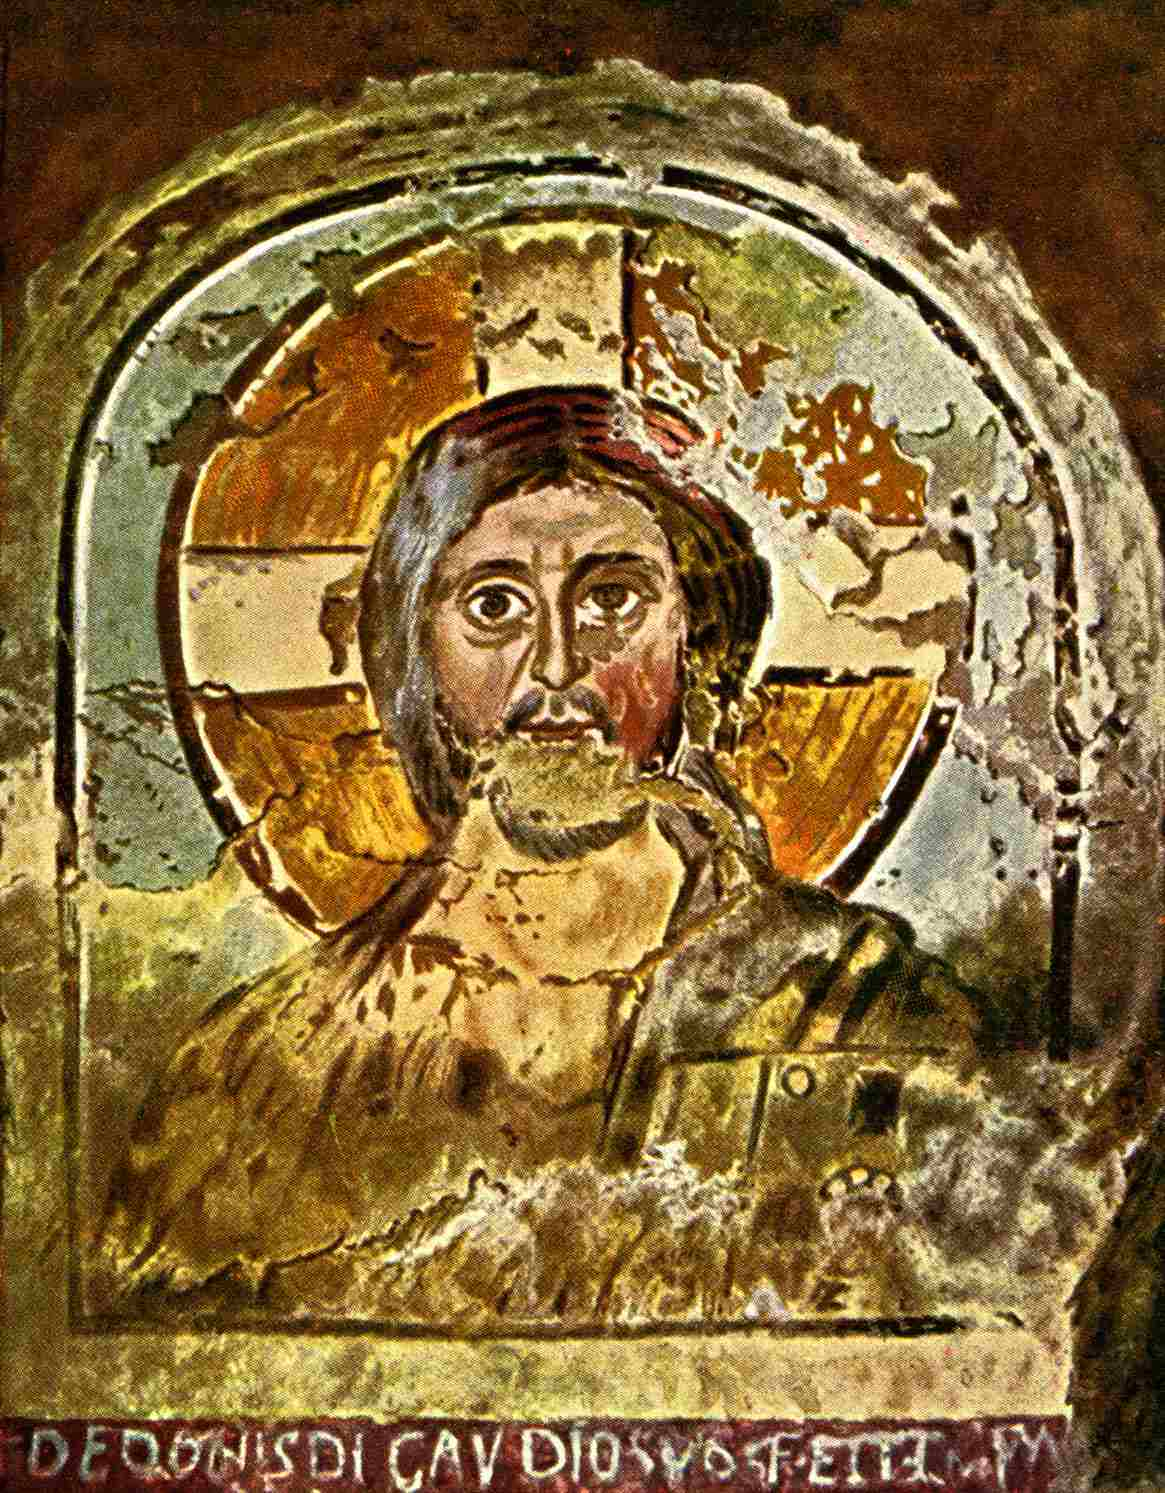 One of many early depictions of Jesus. This one's a fresco.